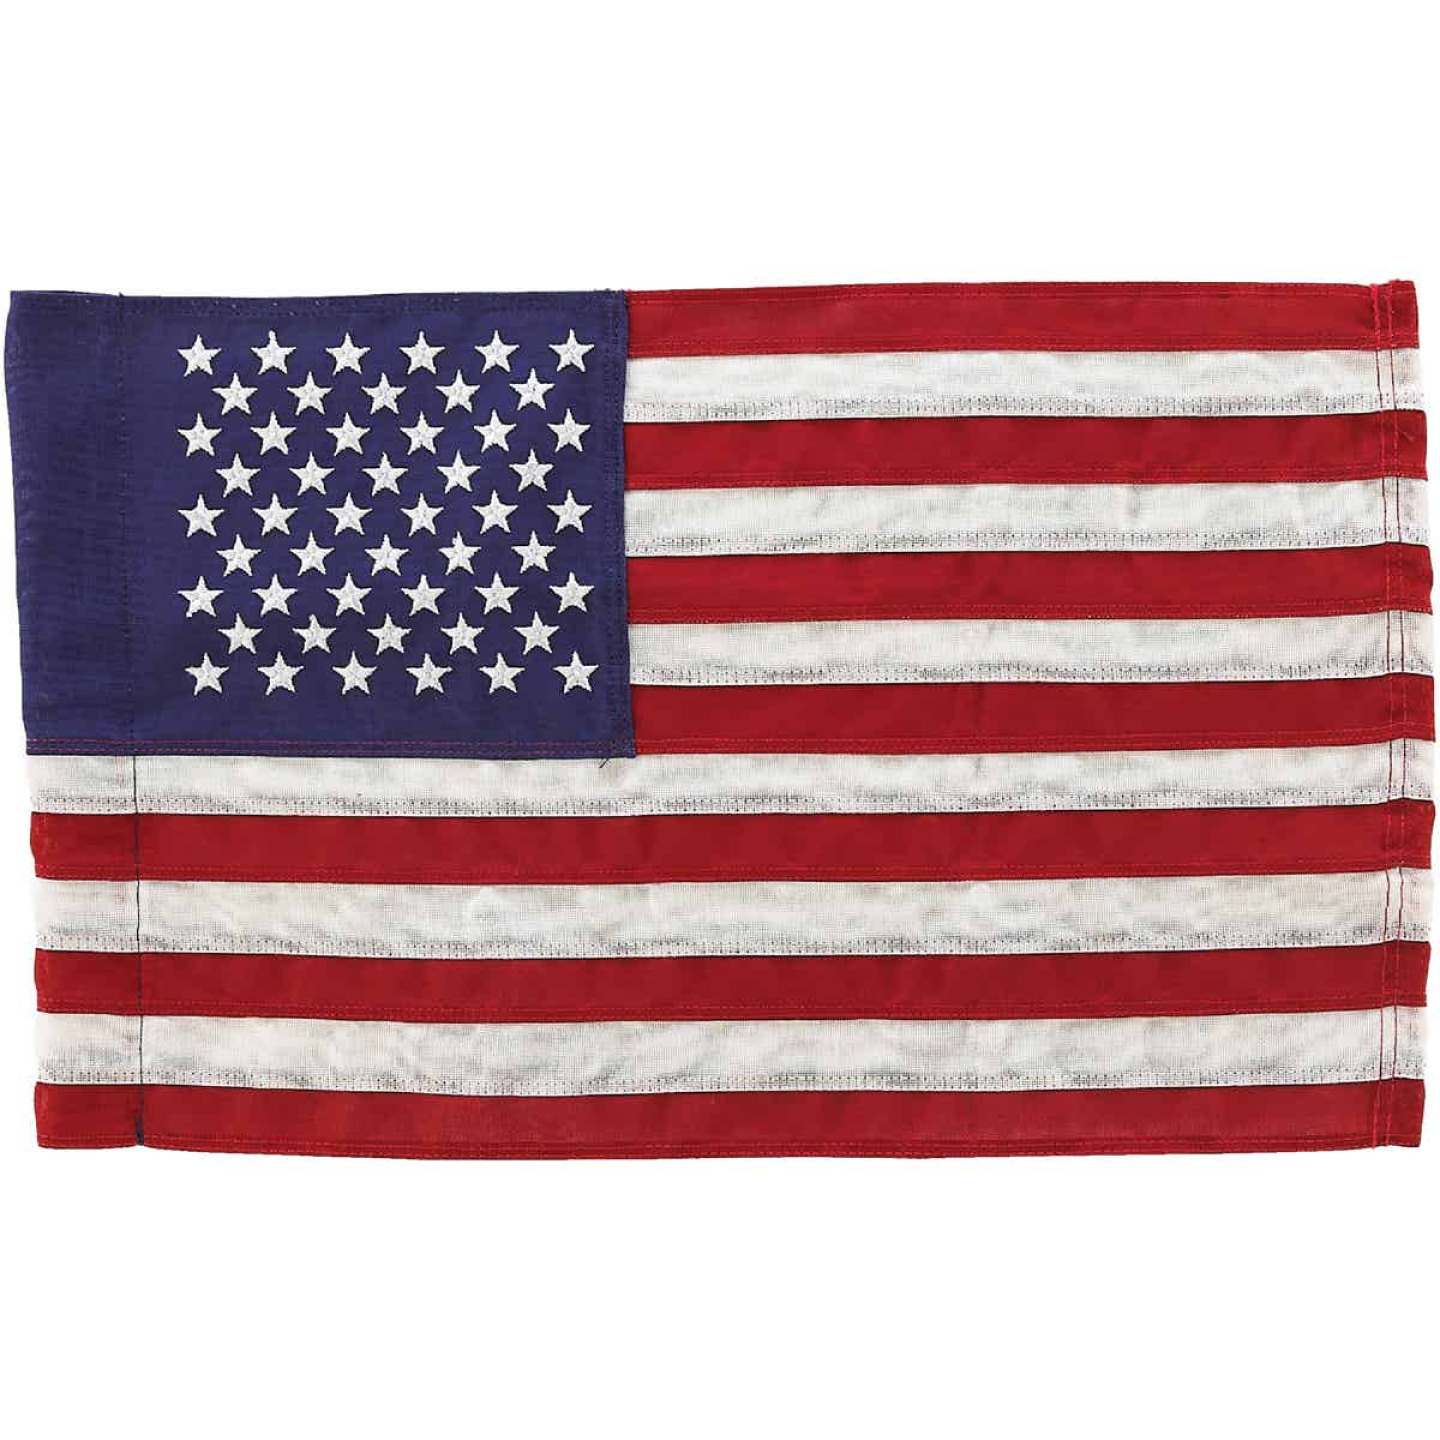 Valley Forge 1 Ft. x 1.5 Ft. Cotton Garden American Flag Image 1